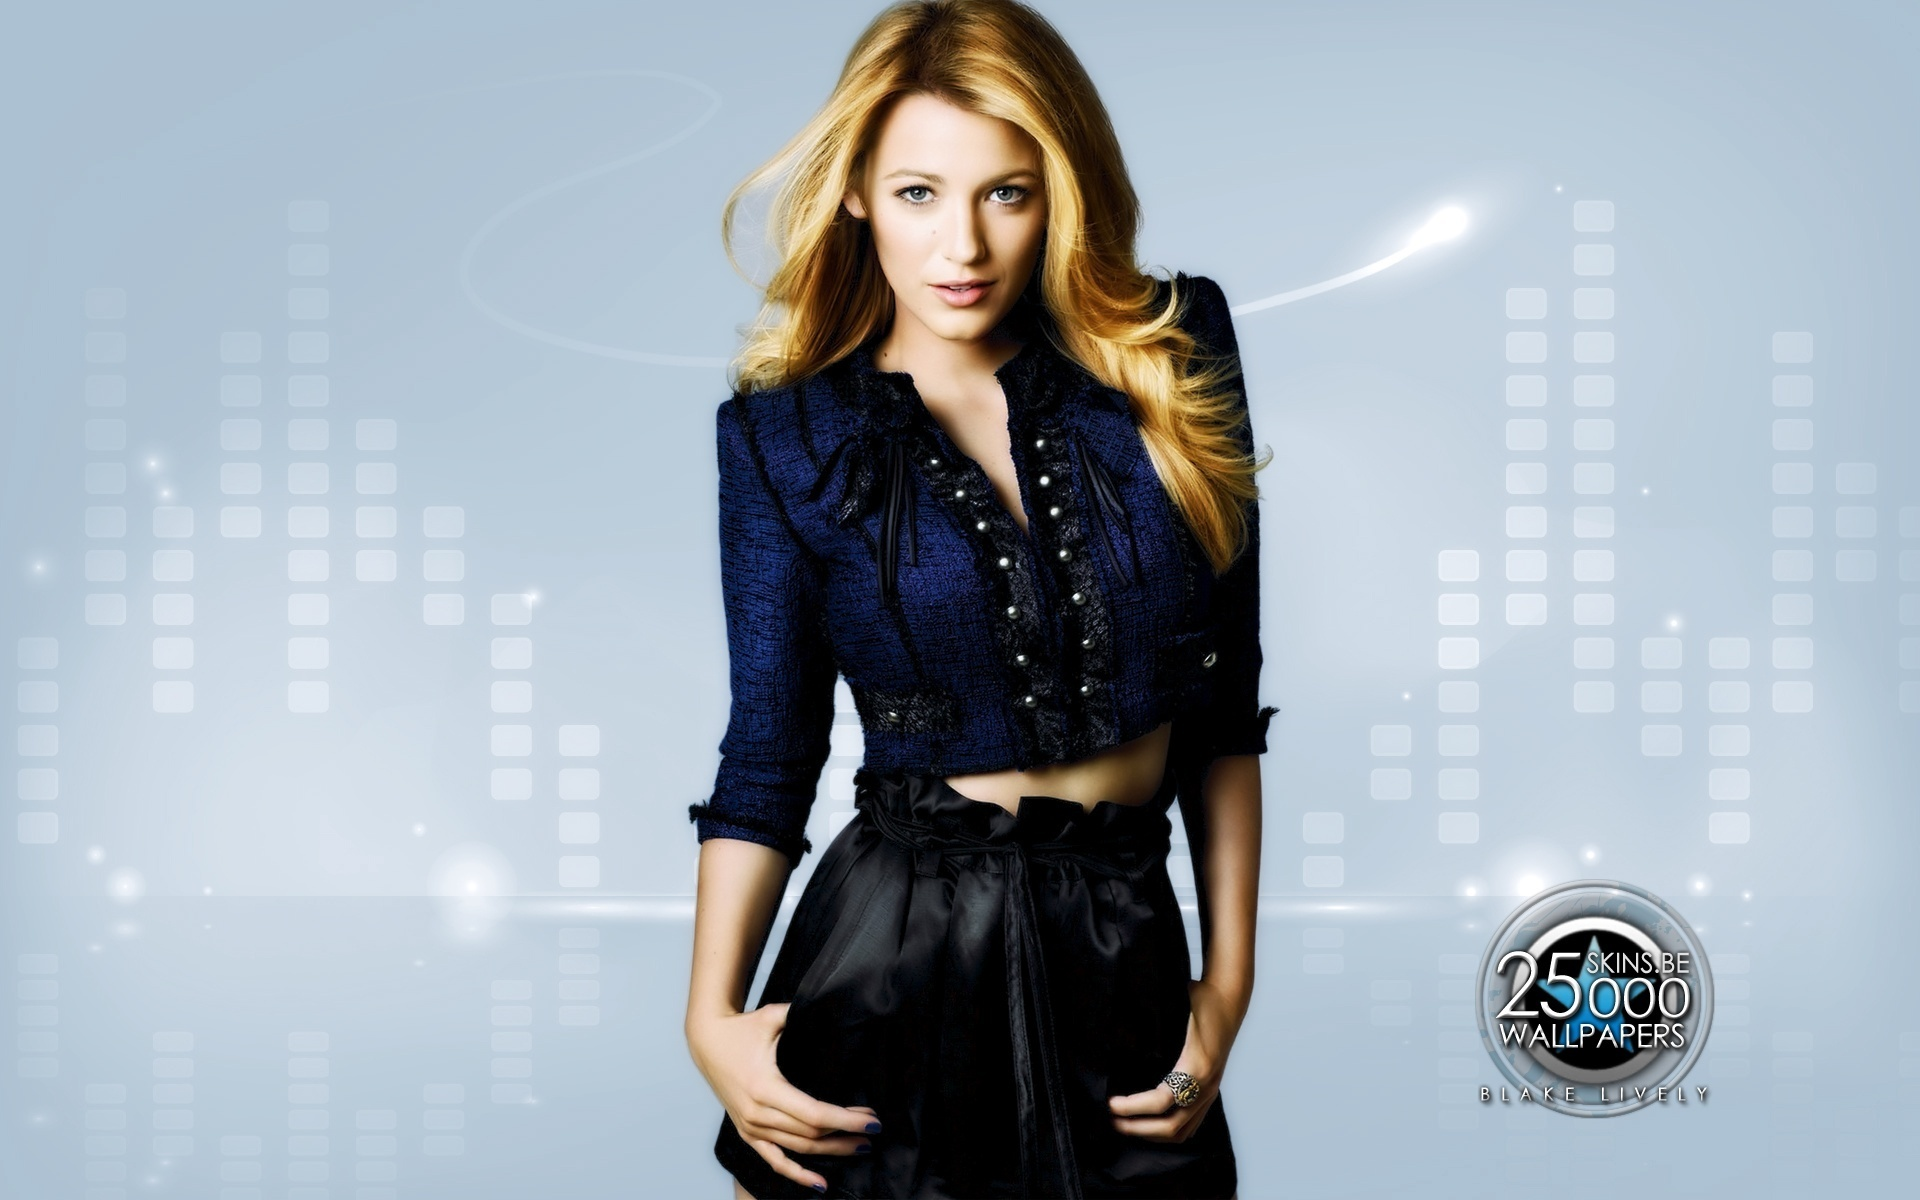 1920x1200 - Blake Lively Wallpapers 25